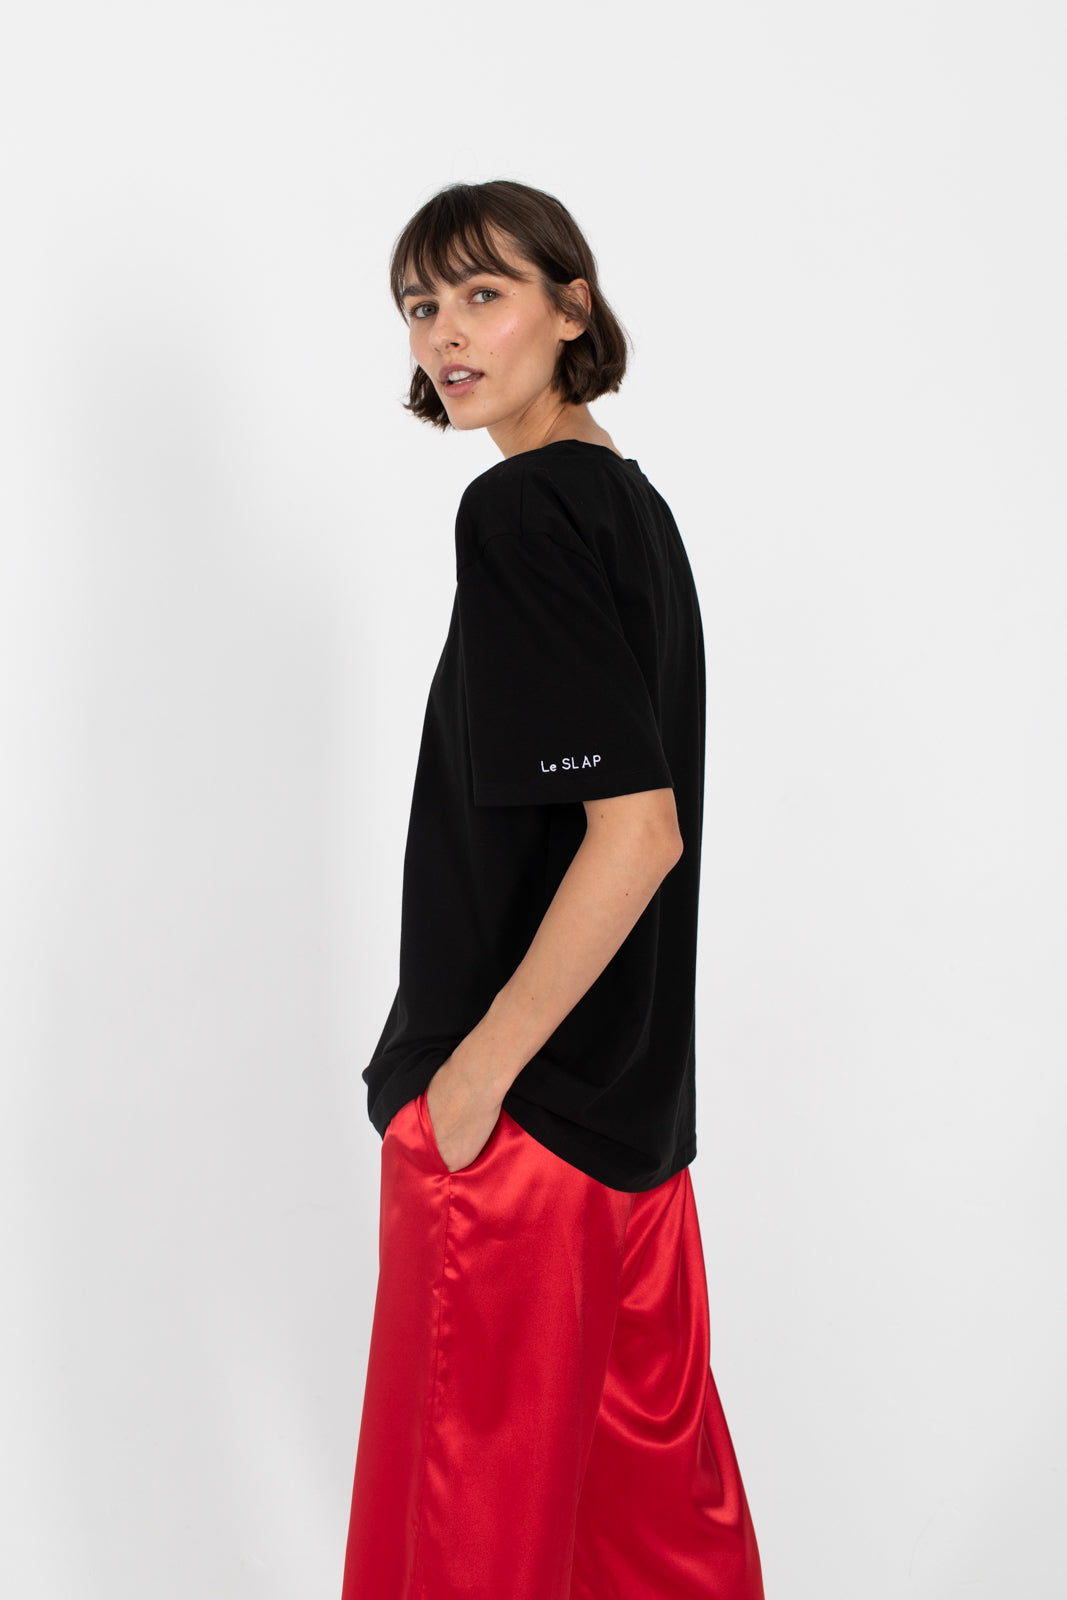 le-slap-logo-tshirt-black-oversize-photoshoot.jpg